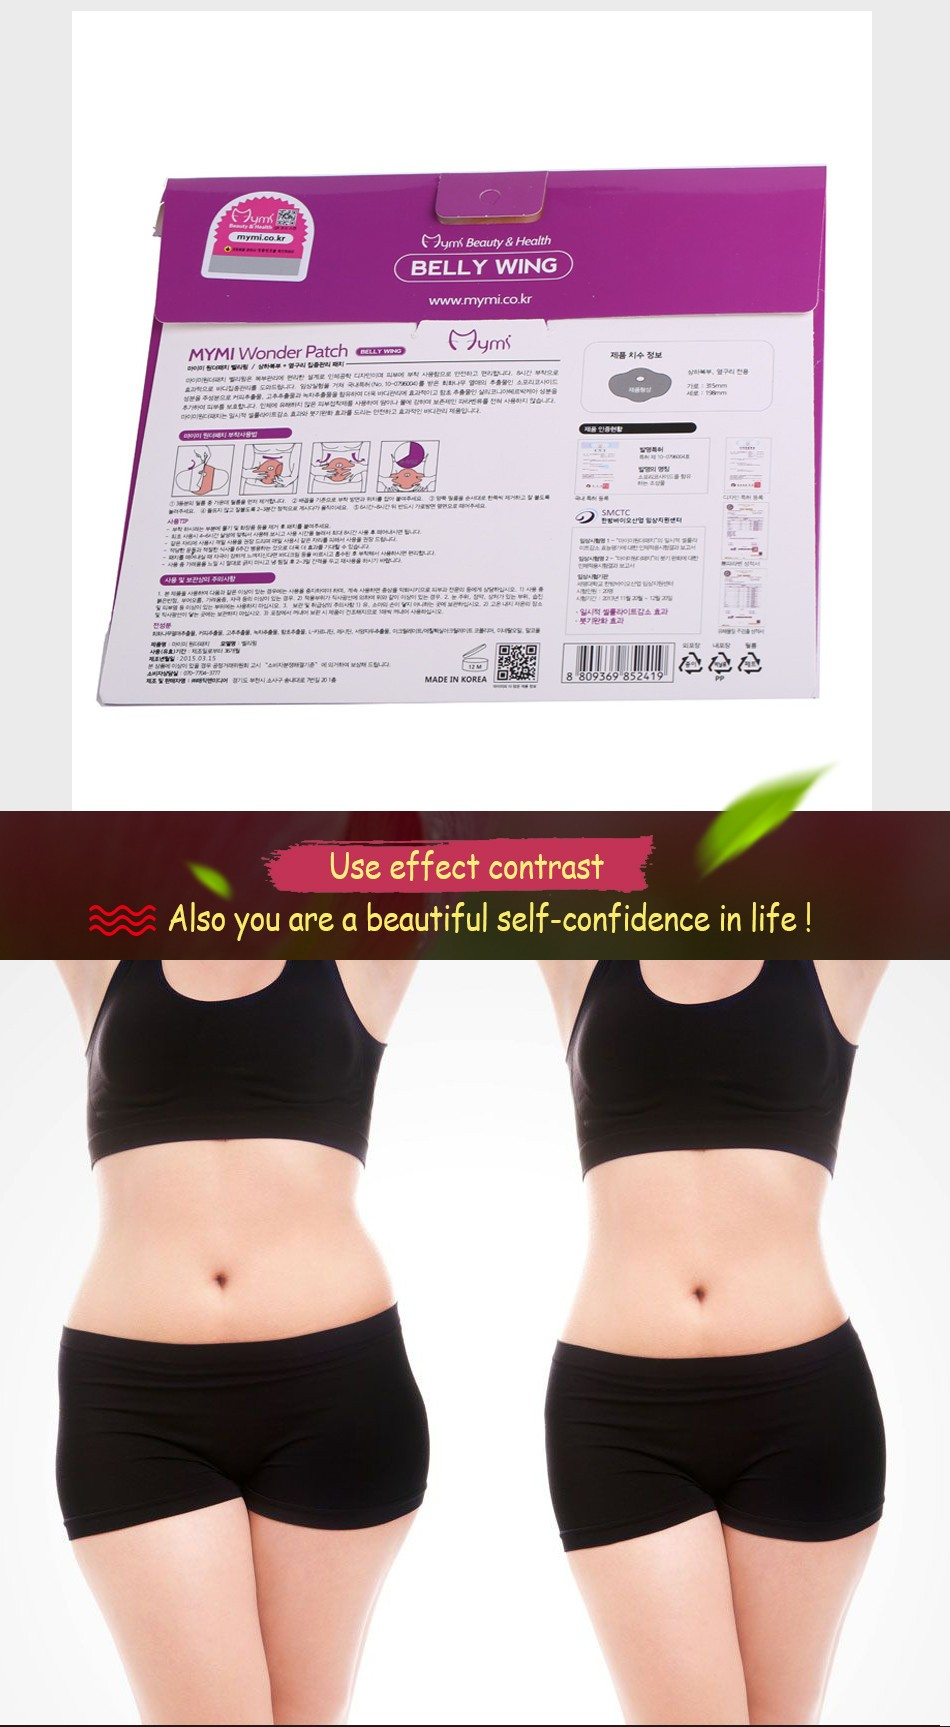 9pieces=3bags=1lot The Third Generation Slim Patch Women Weight Loss Slimming Stick Burning Fat Patch Health Care  9pieces=3bags=1lot The Third Generation Slim Patch Women Weight Loss Slimming Stick Burning Fat Patch Health Care